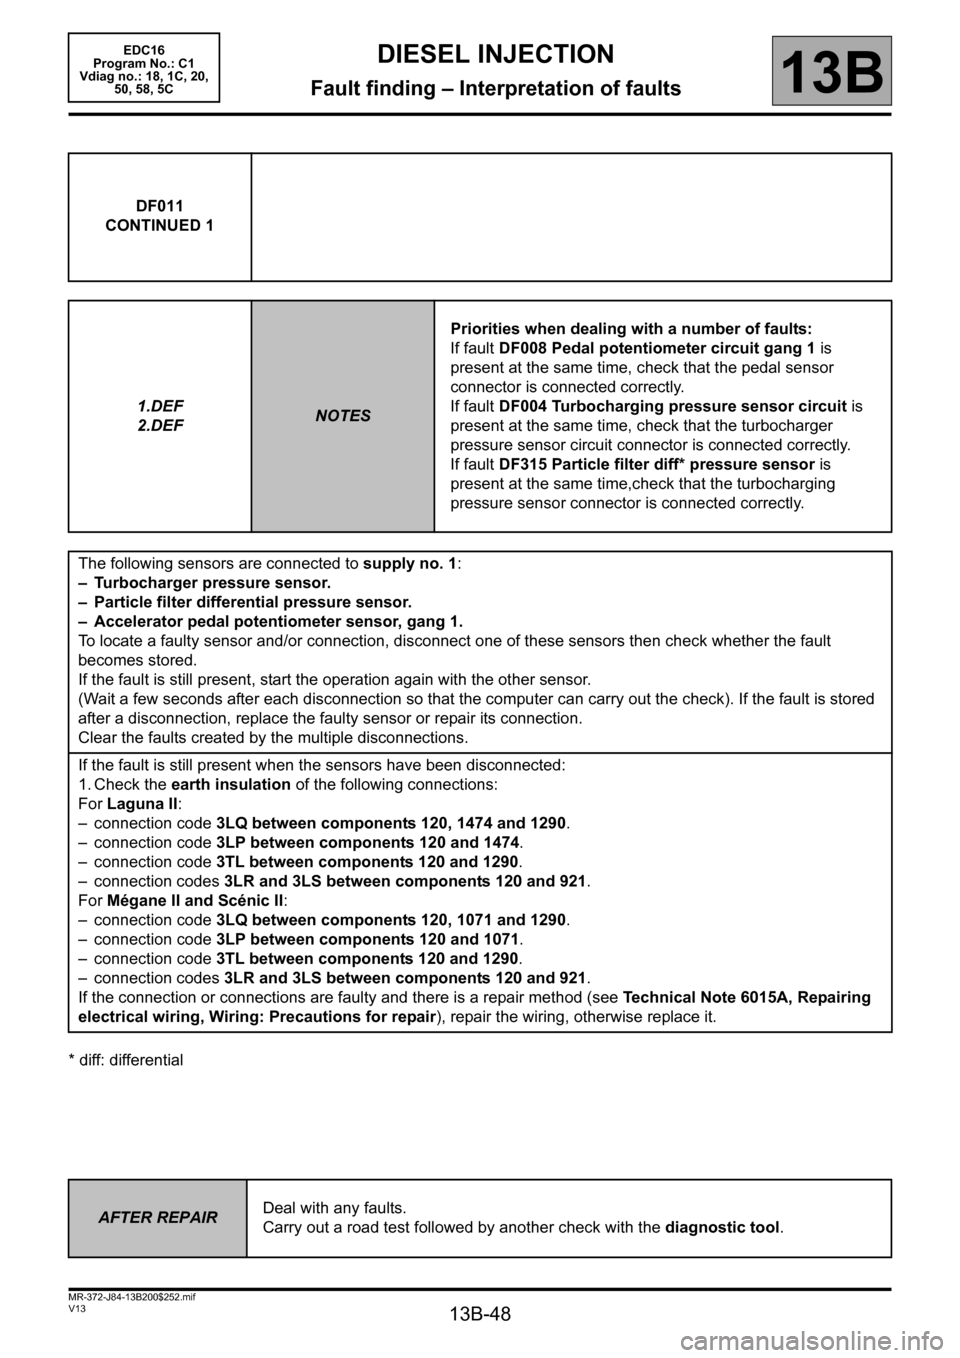 RENAULT SCENIC 2011 J95 / 3.G Engine And Peripherals EDC16 Workshop Manual, Page 48